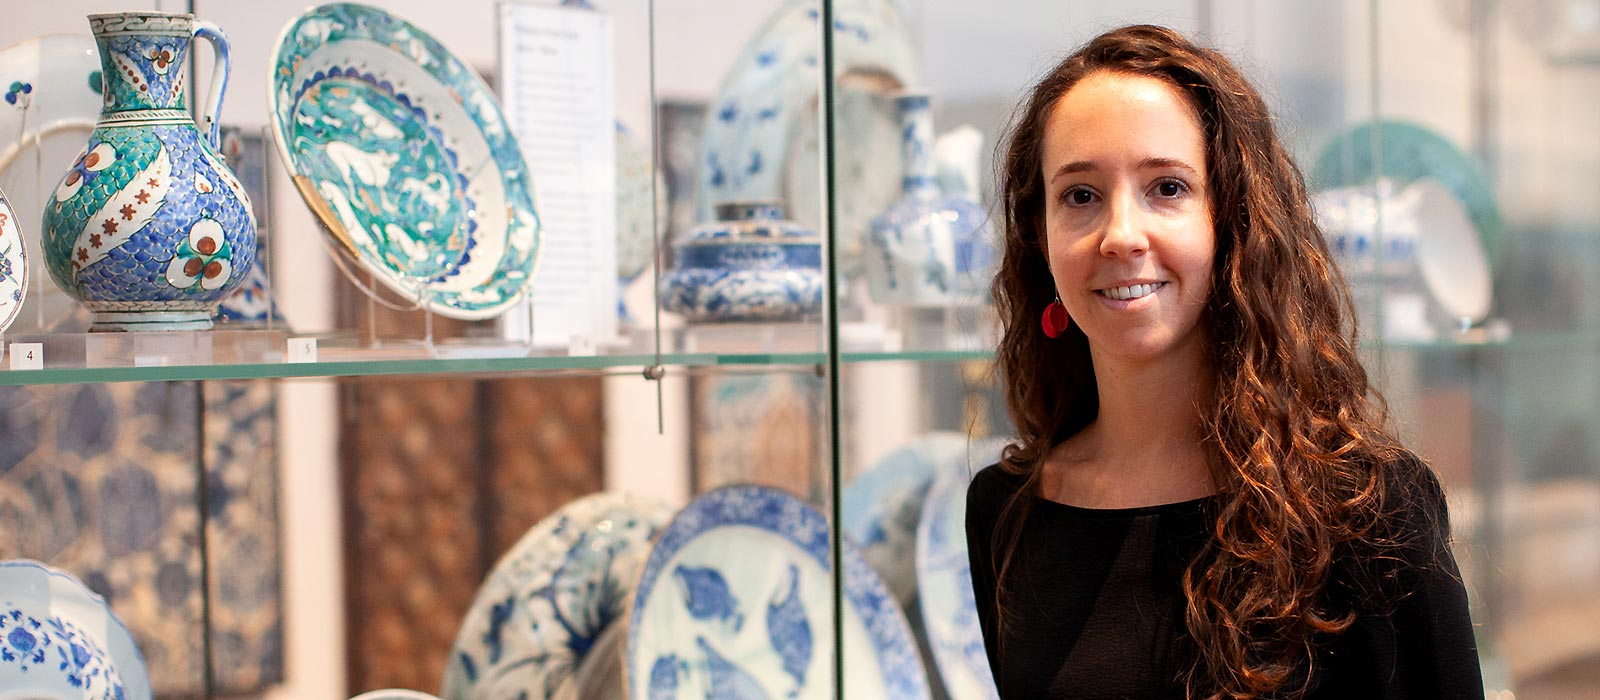 Dr Federica Gigante standing in front of display of Islamic ceramics at the Ashmolean Museum